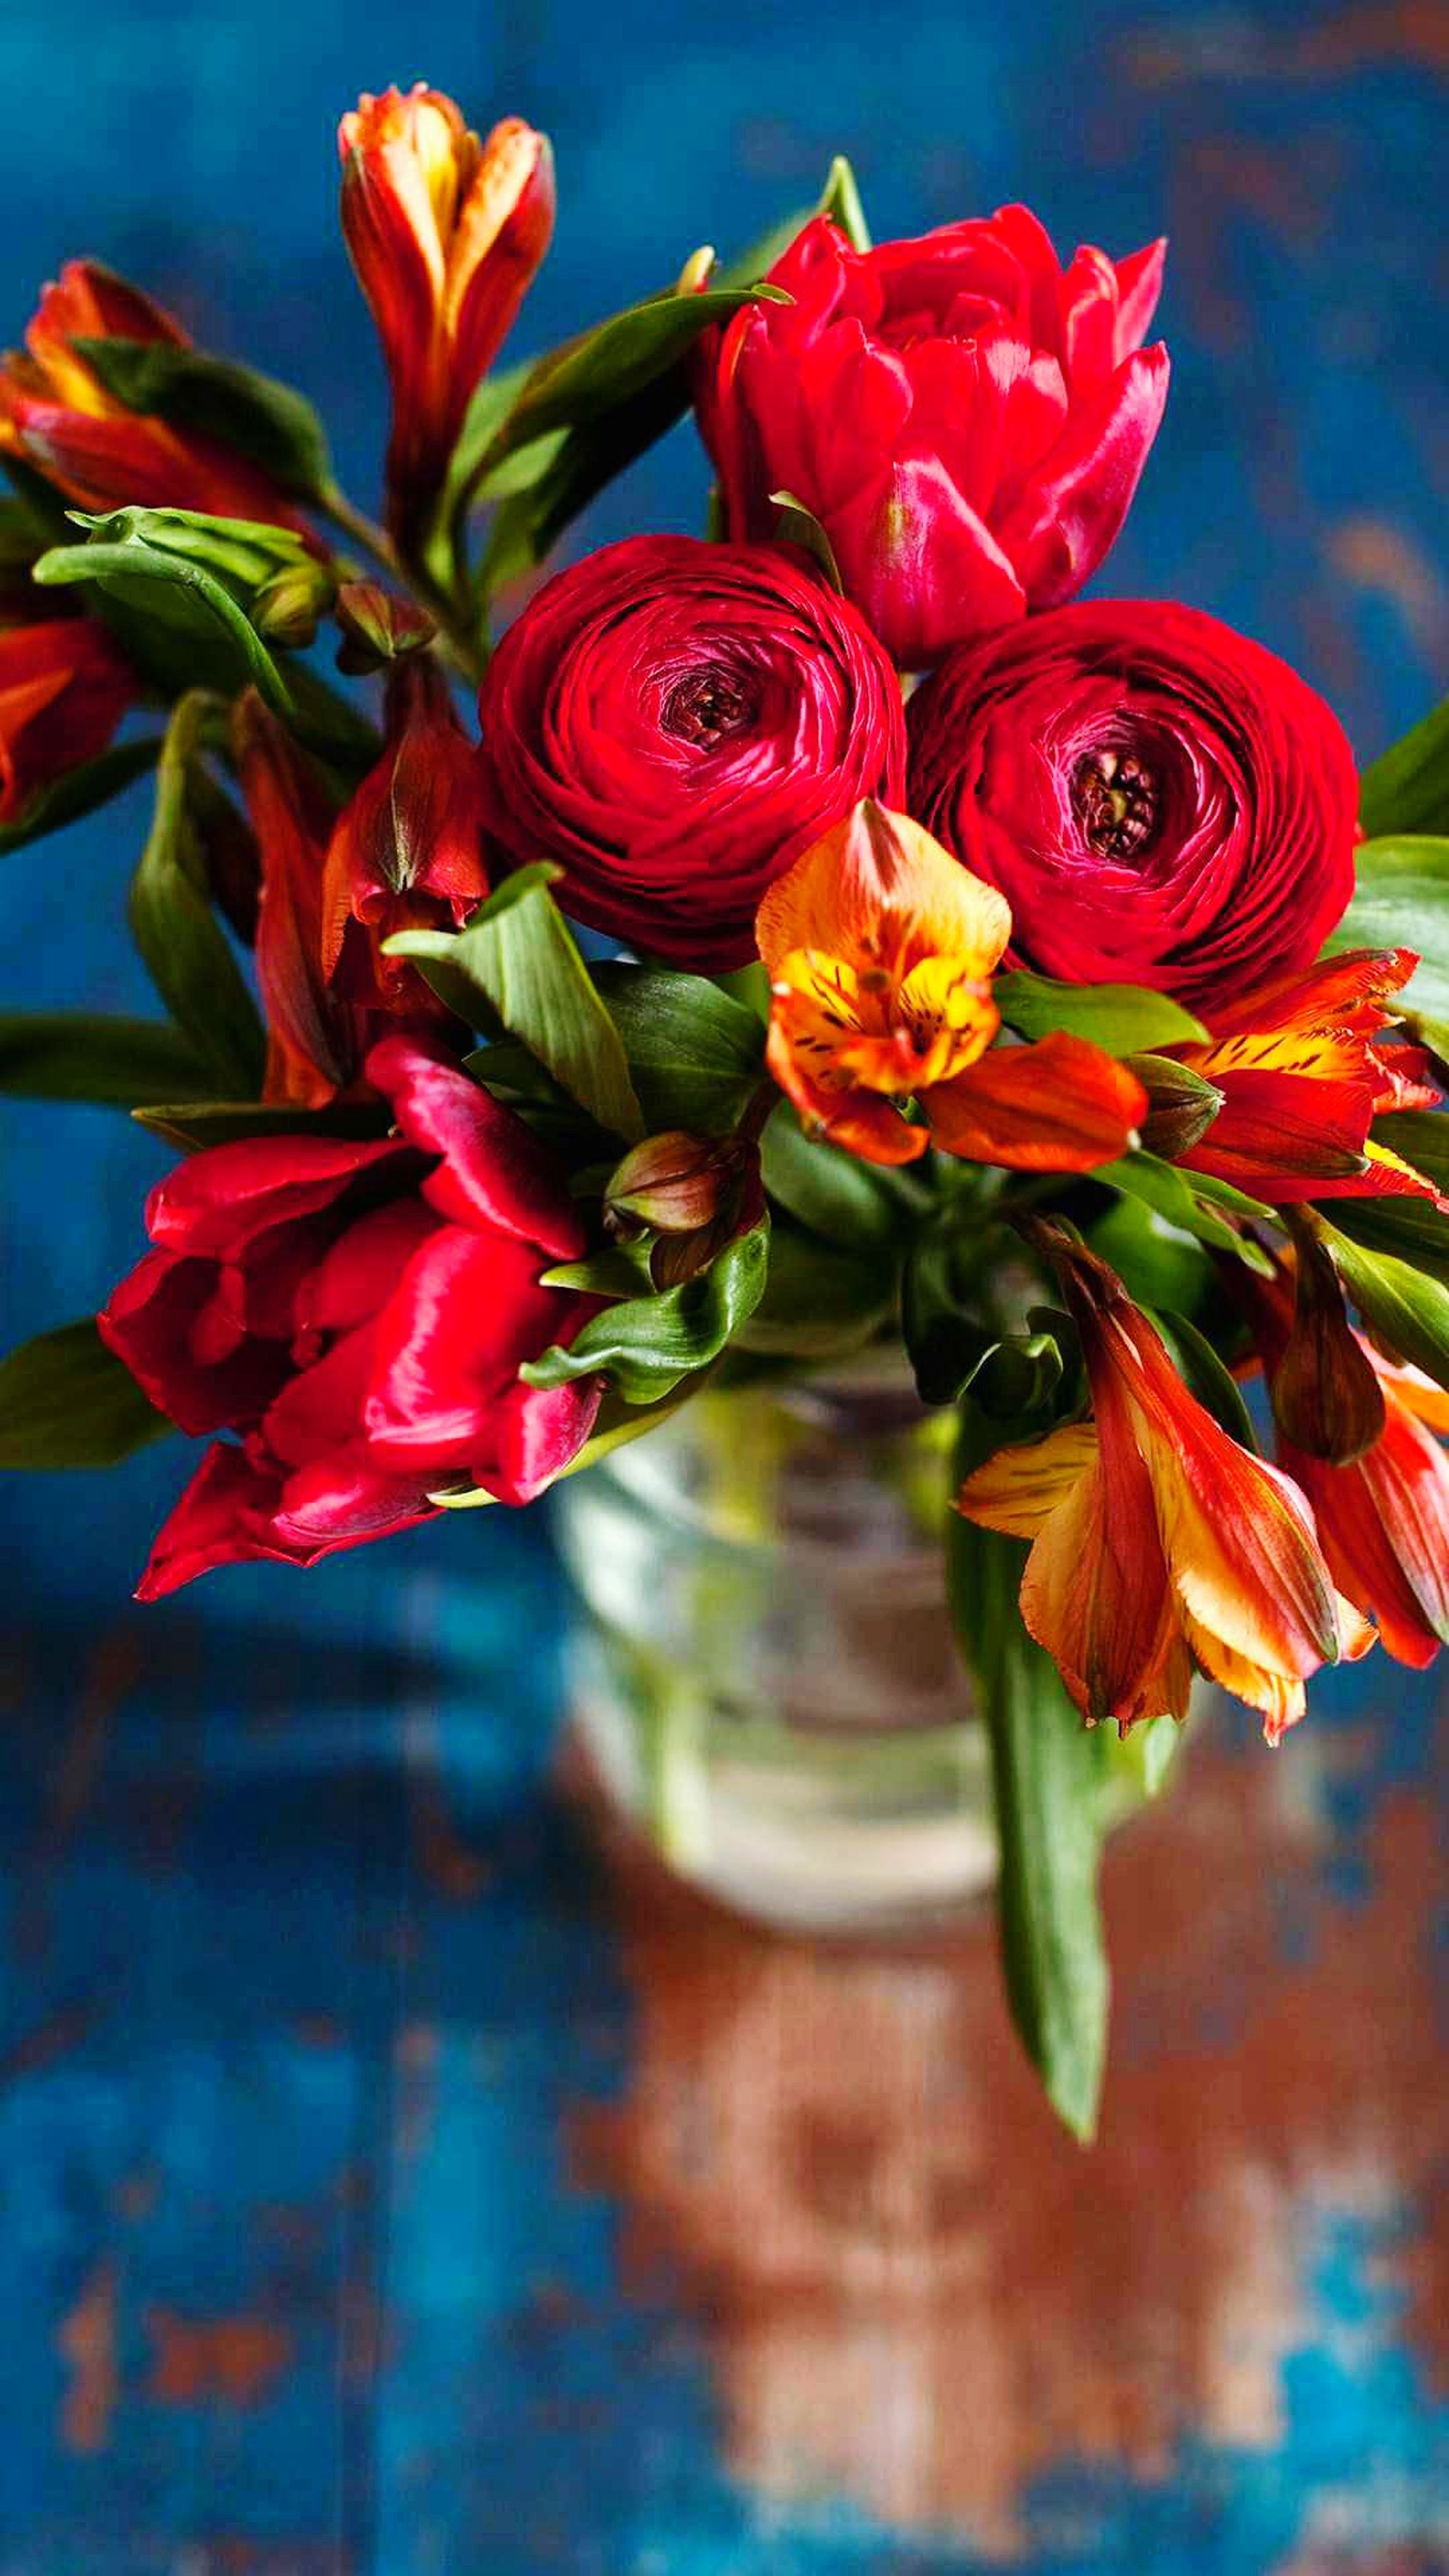 flower, petal, beauty in nature, fragility, freshness, flower head, red, nature, bouquet, no people, vase, close-up, day, outdoors